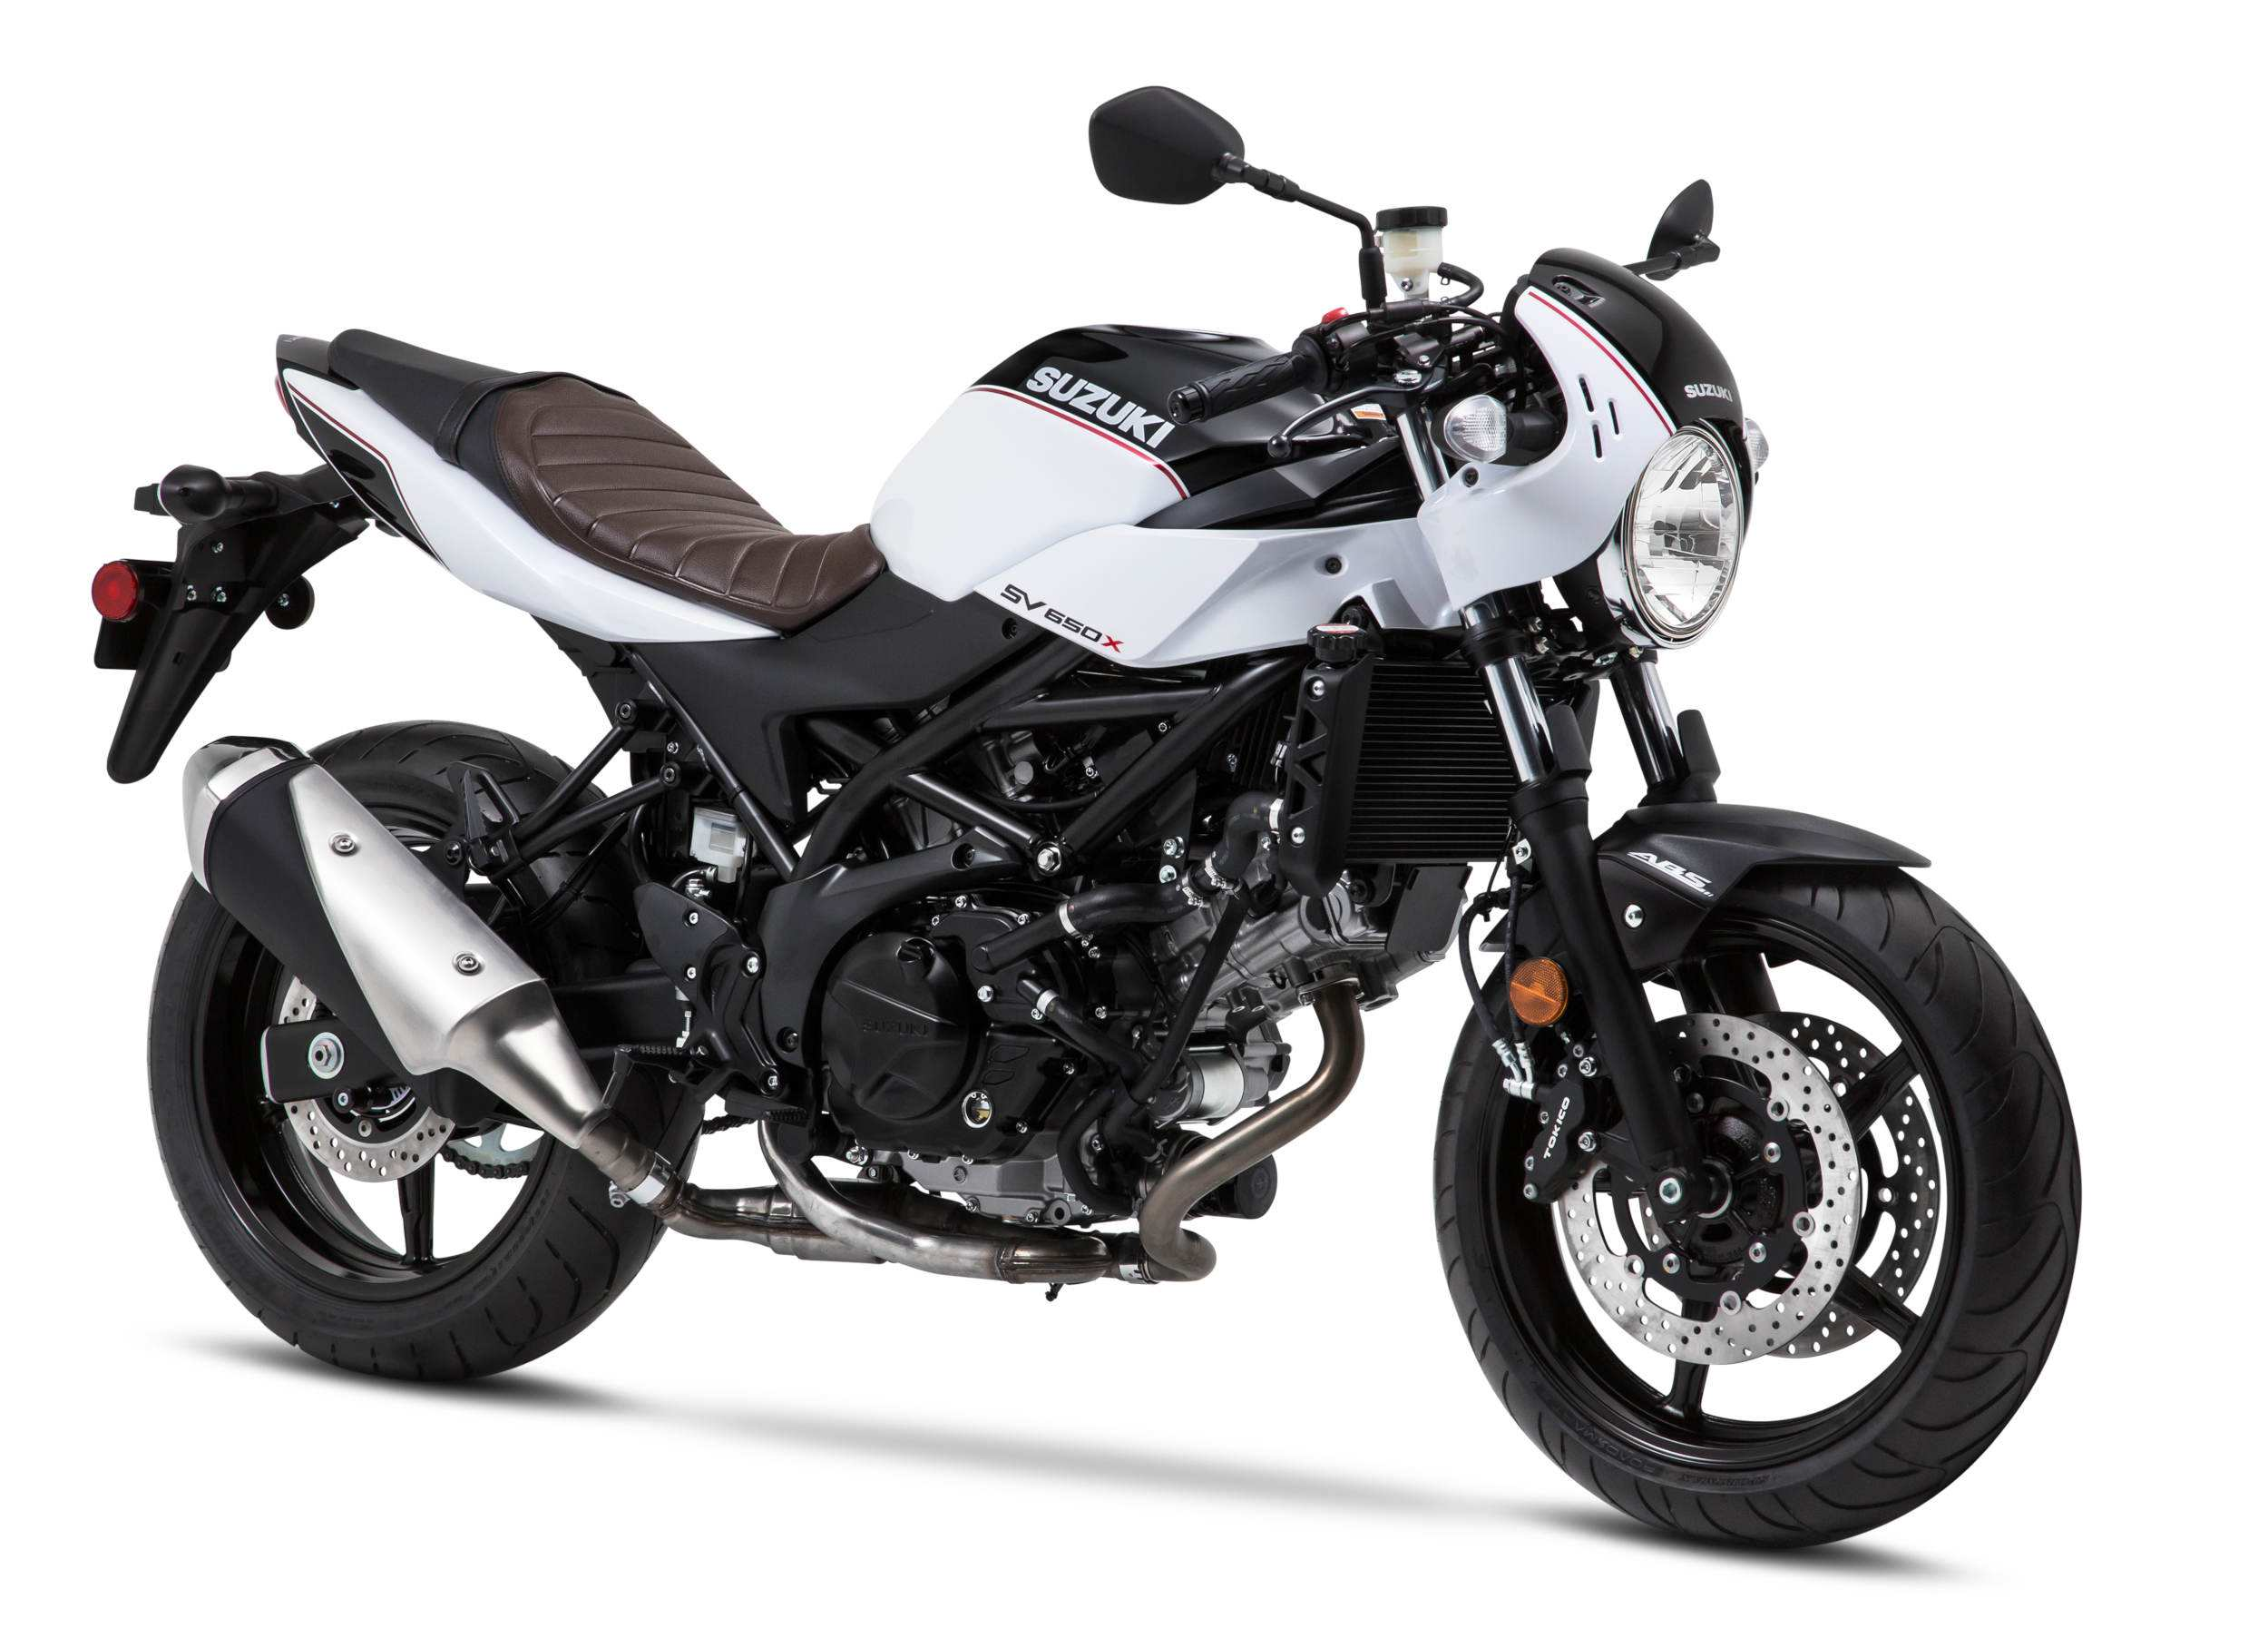 91 All New 2019 Suzuki Motorcycle Models Price Design And Review